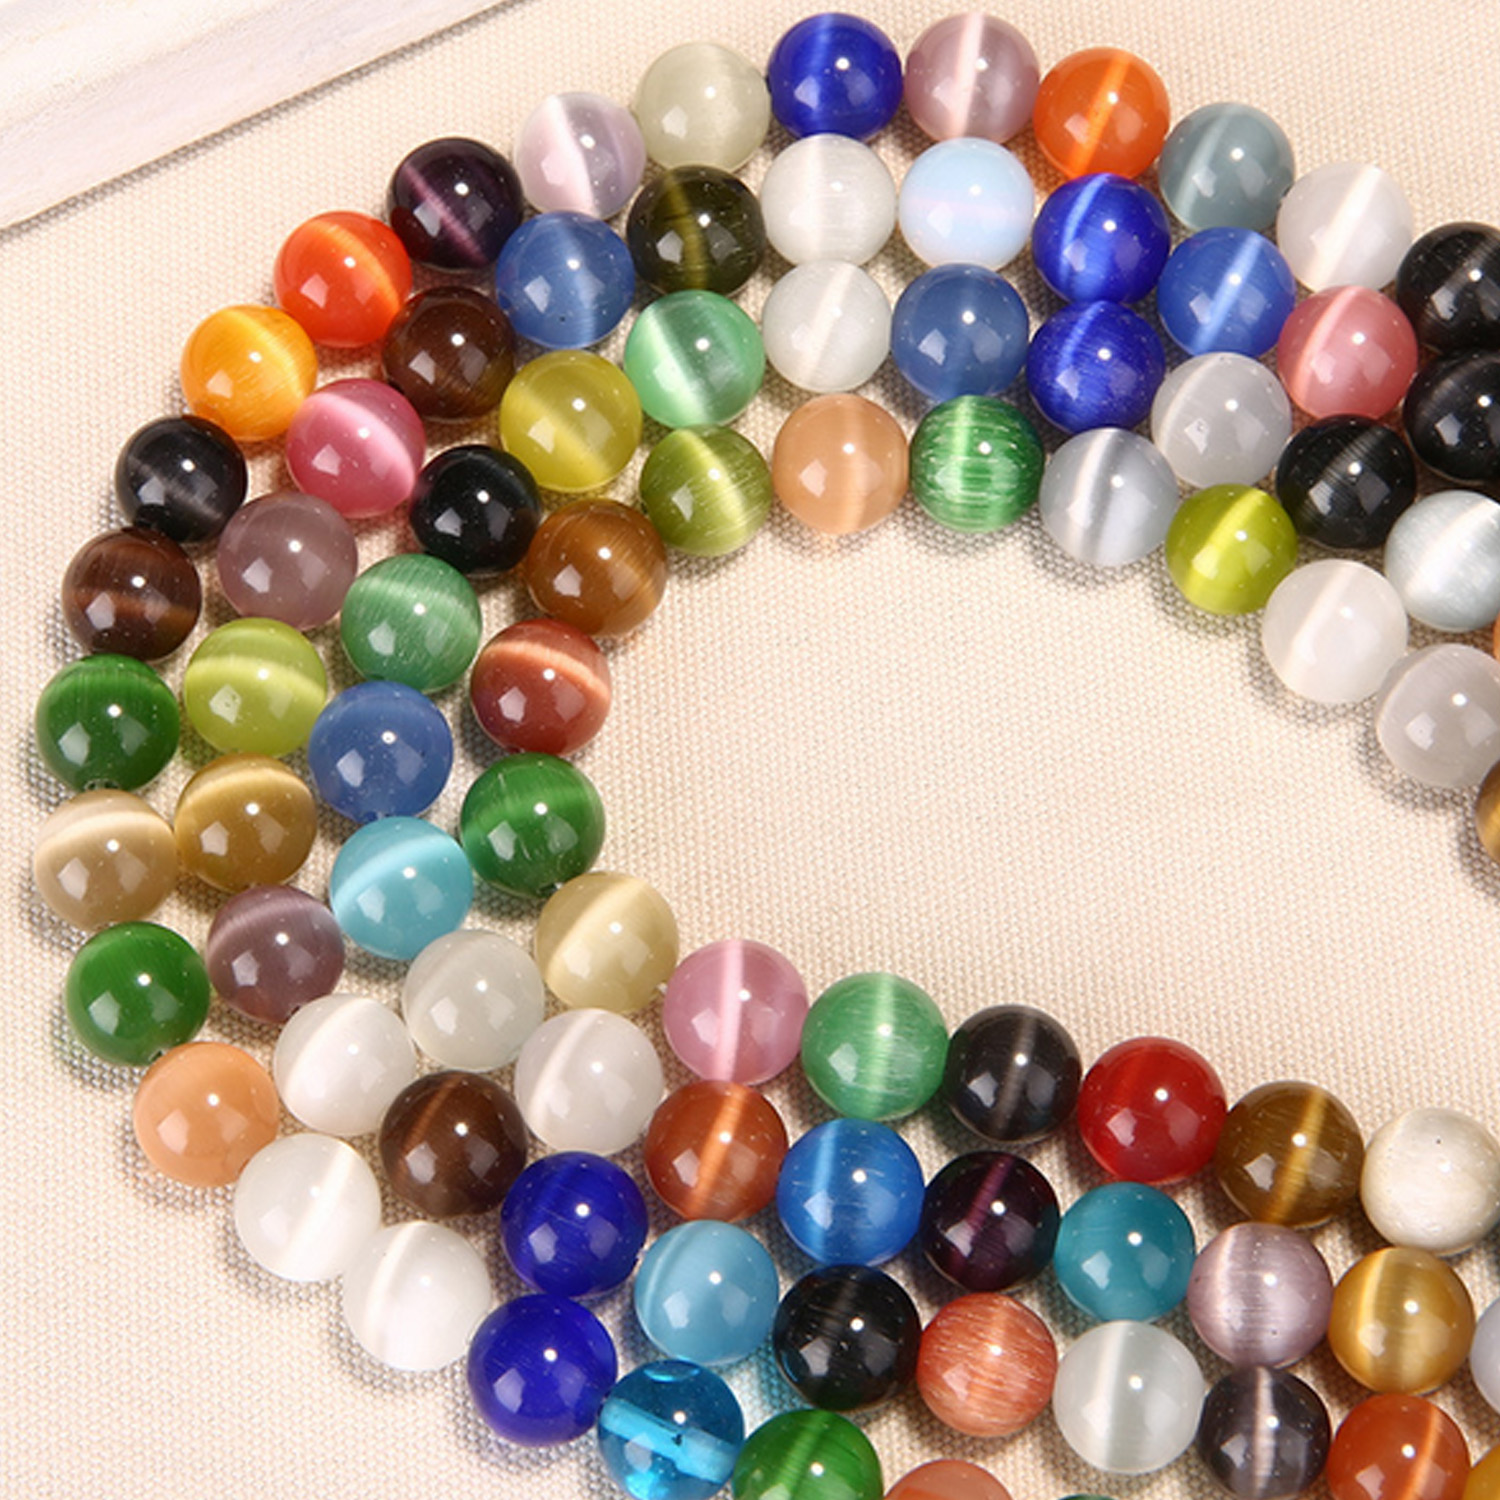 132Pcs 6mm Multi-color Natural Round Opal Stone Gemstone Fashion Decorative Ranbow Beads Toys Gifts DIY Bracelet Necklace Making